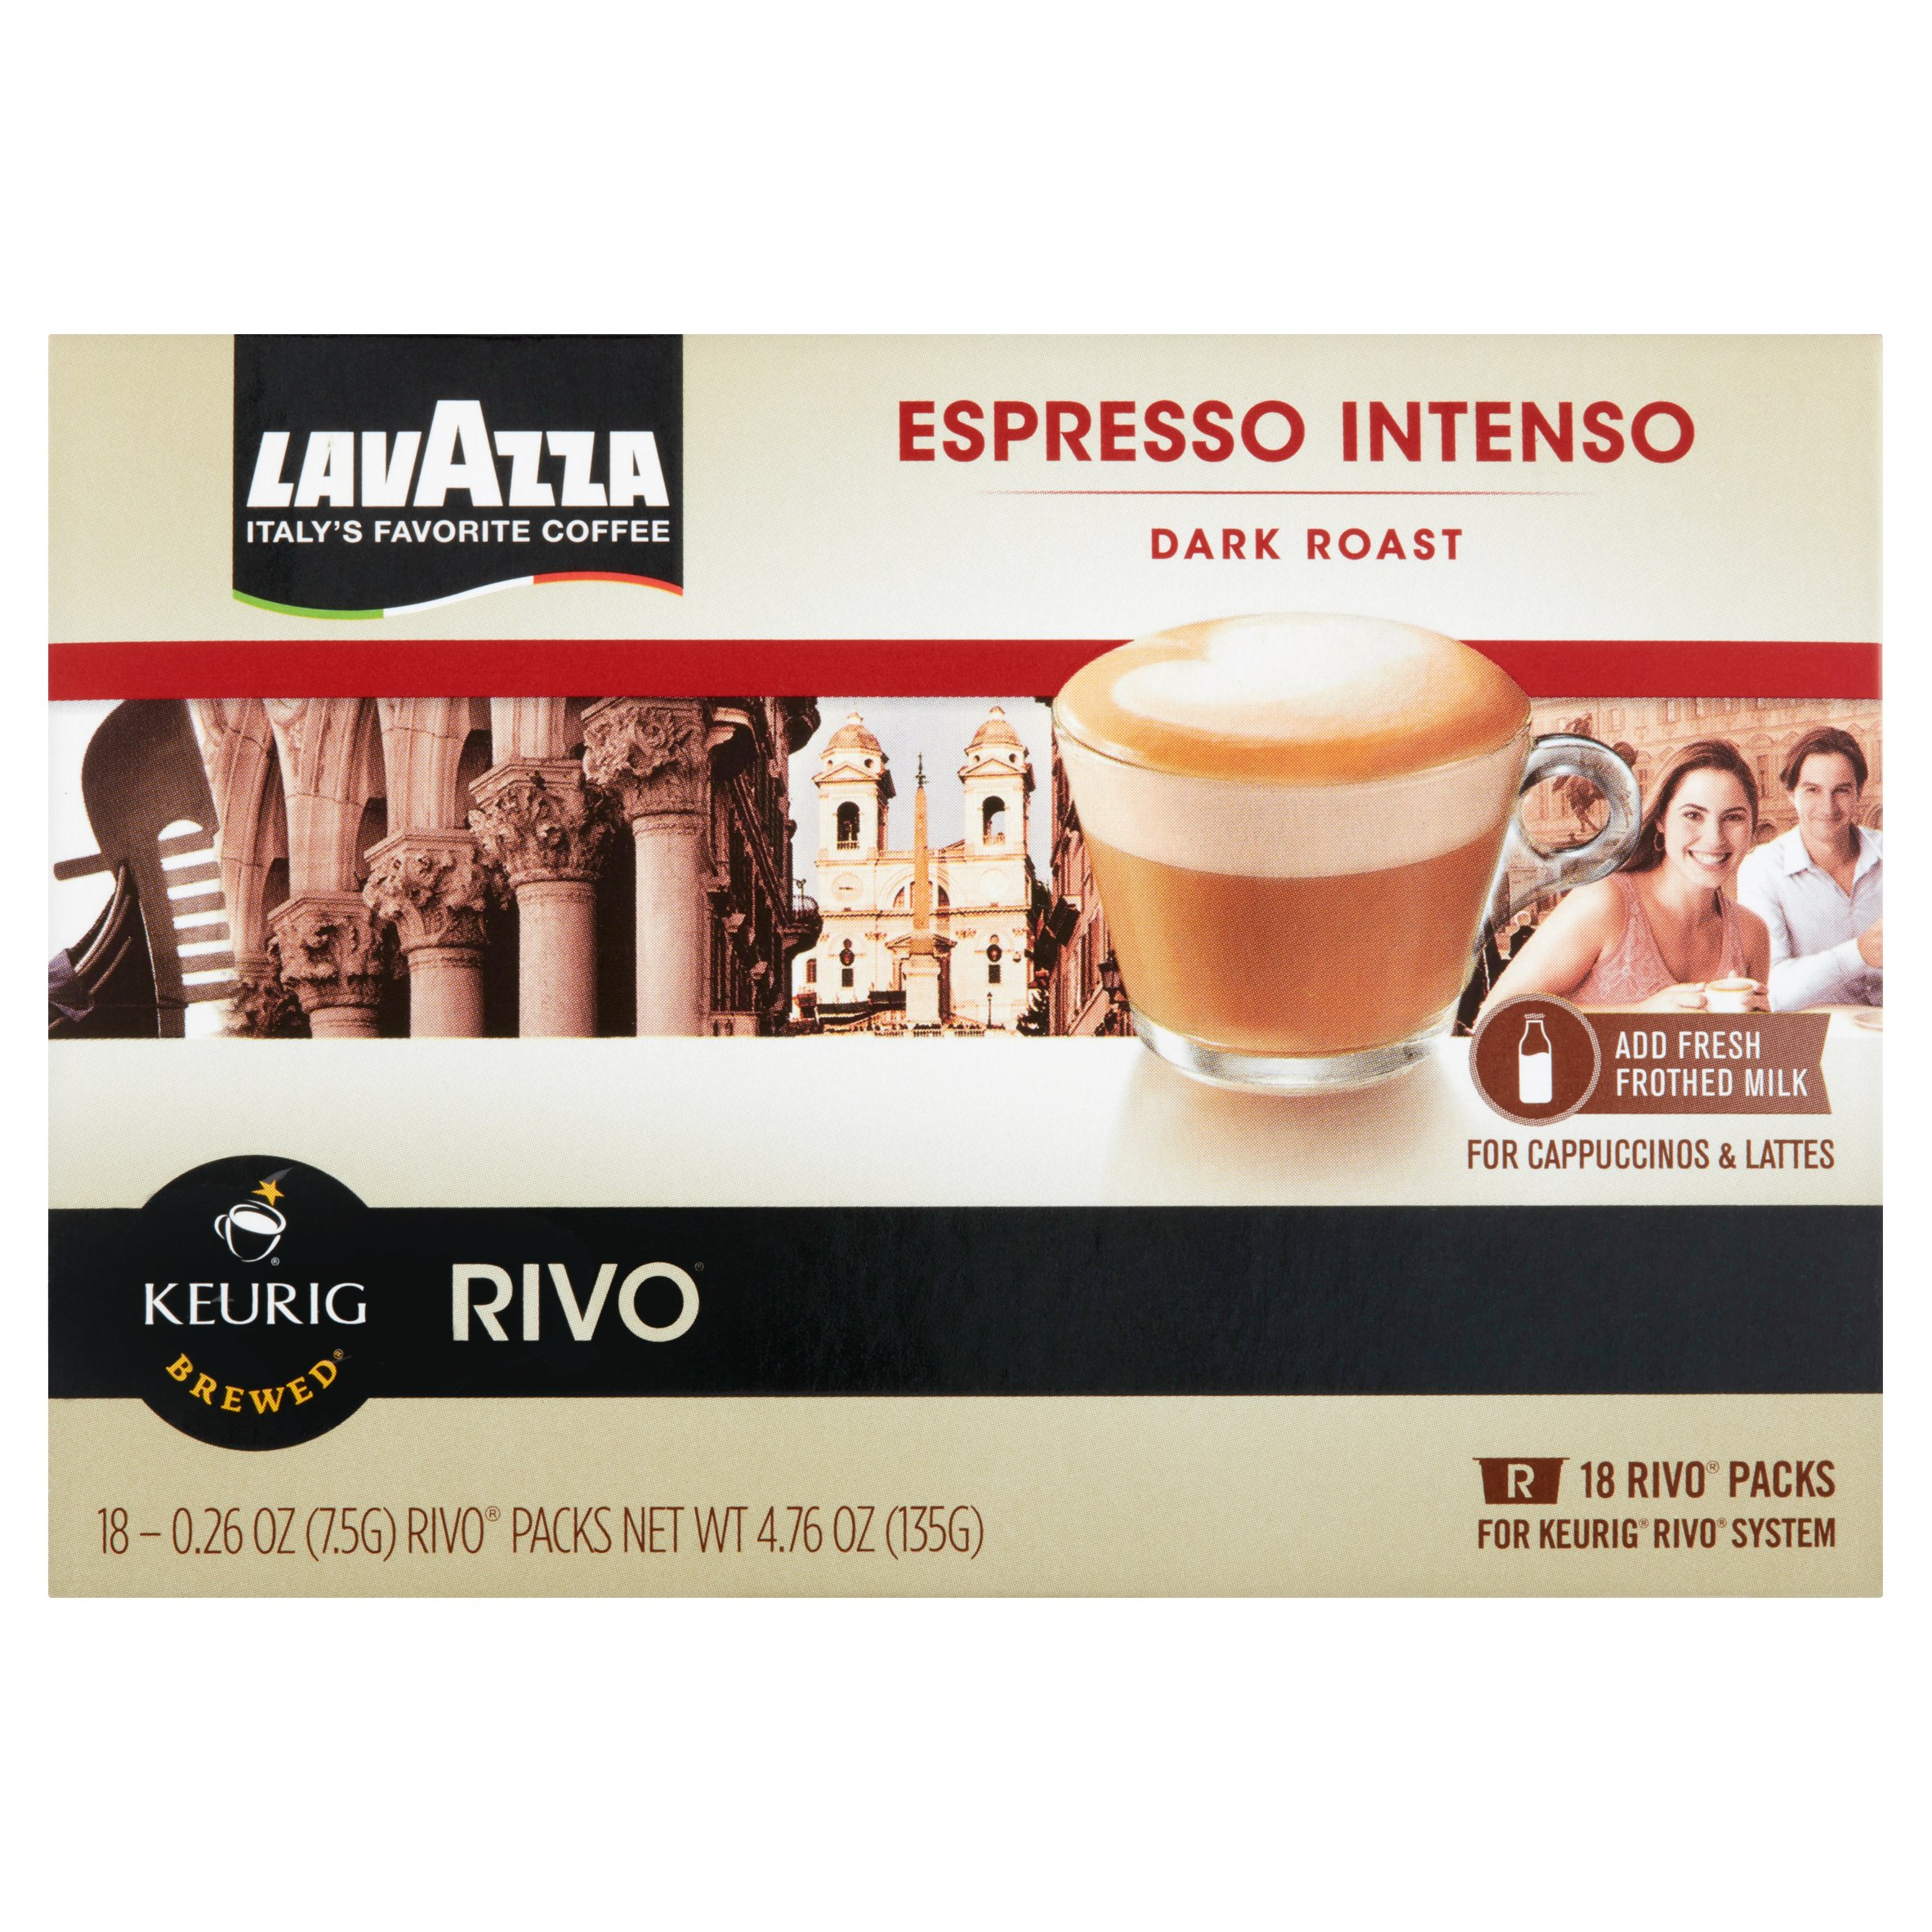 Lavazza Dark Roast Espresso Intenso, 0.26 oz, 18 count